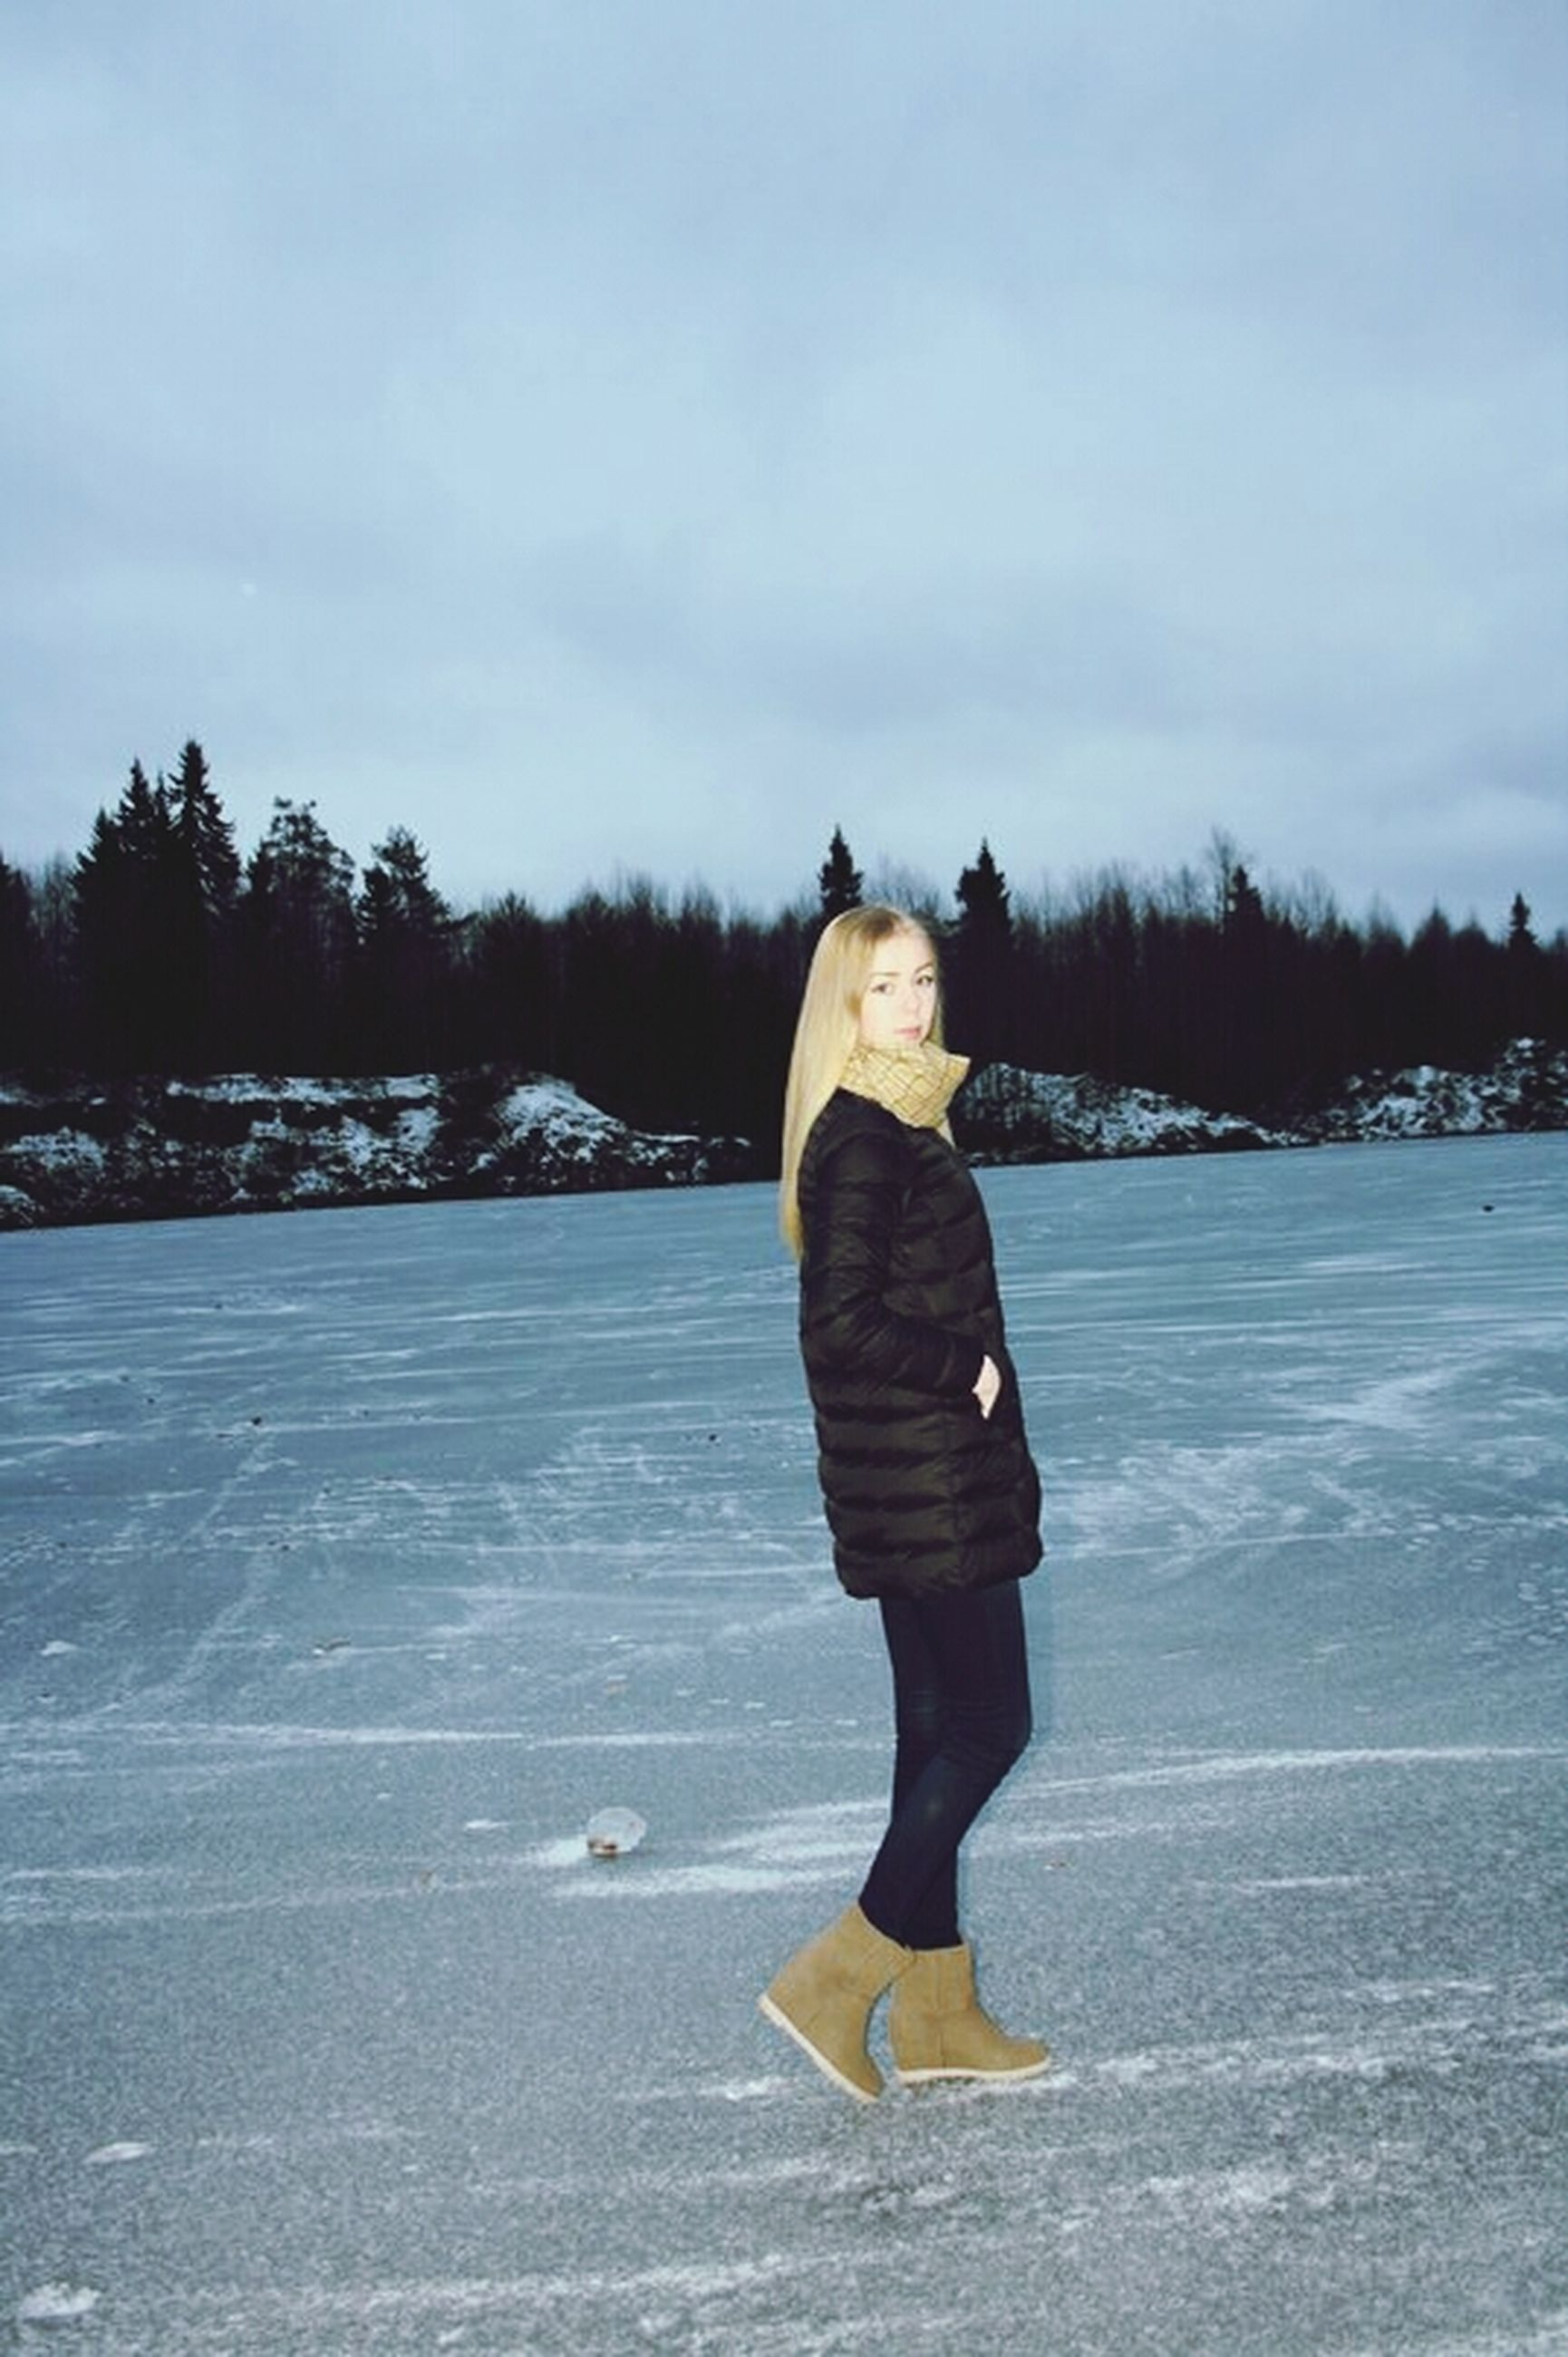 snow, winter, cold temperature, season, lifestyles, full length, leisure activity, rear view, weather, standing, sky, warm clothing, tree, casual clothing, transportation, day, nature, outdoors